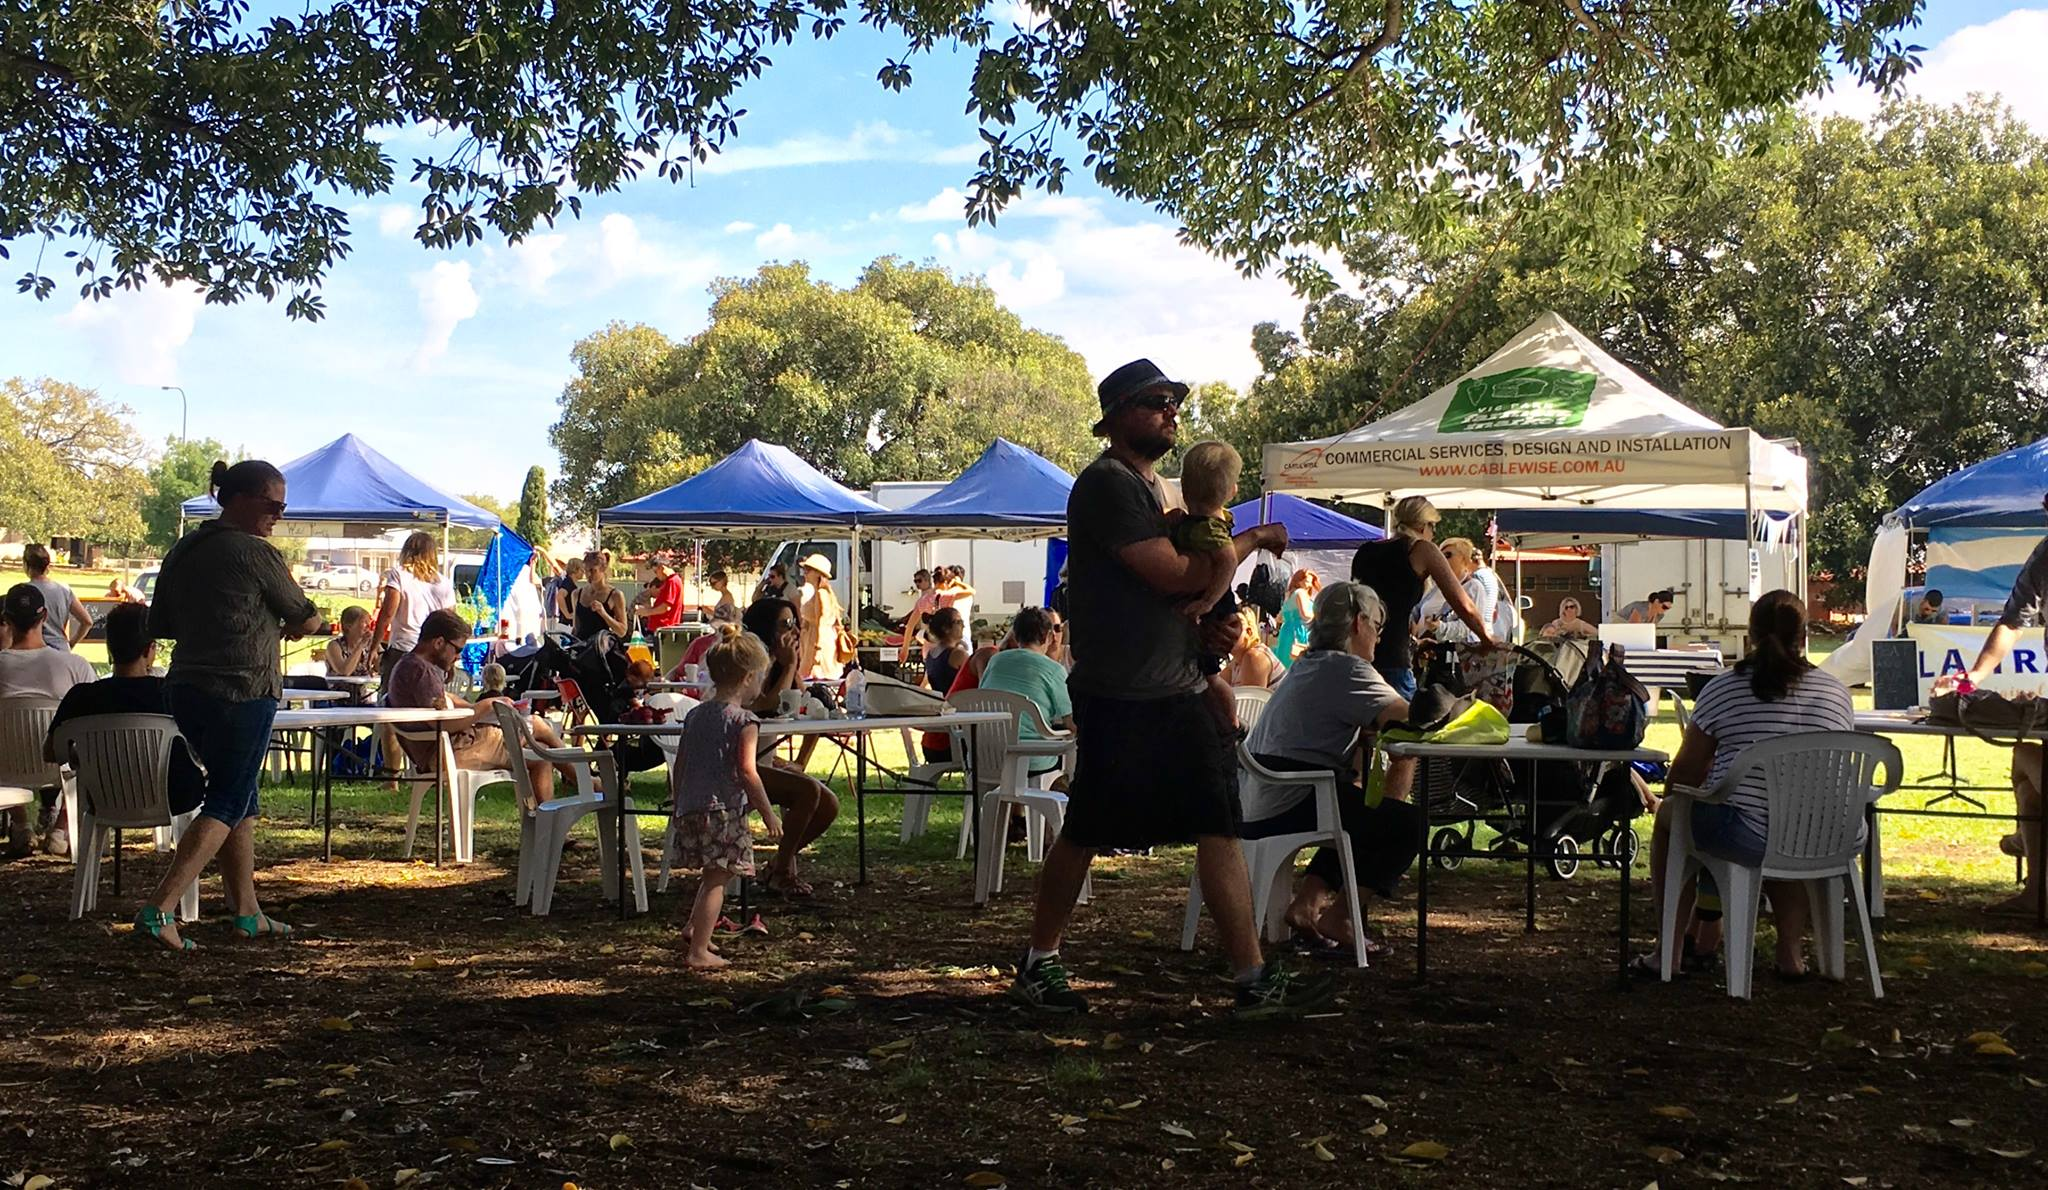 Vic Park Farmers Market on this Sunday